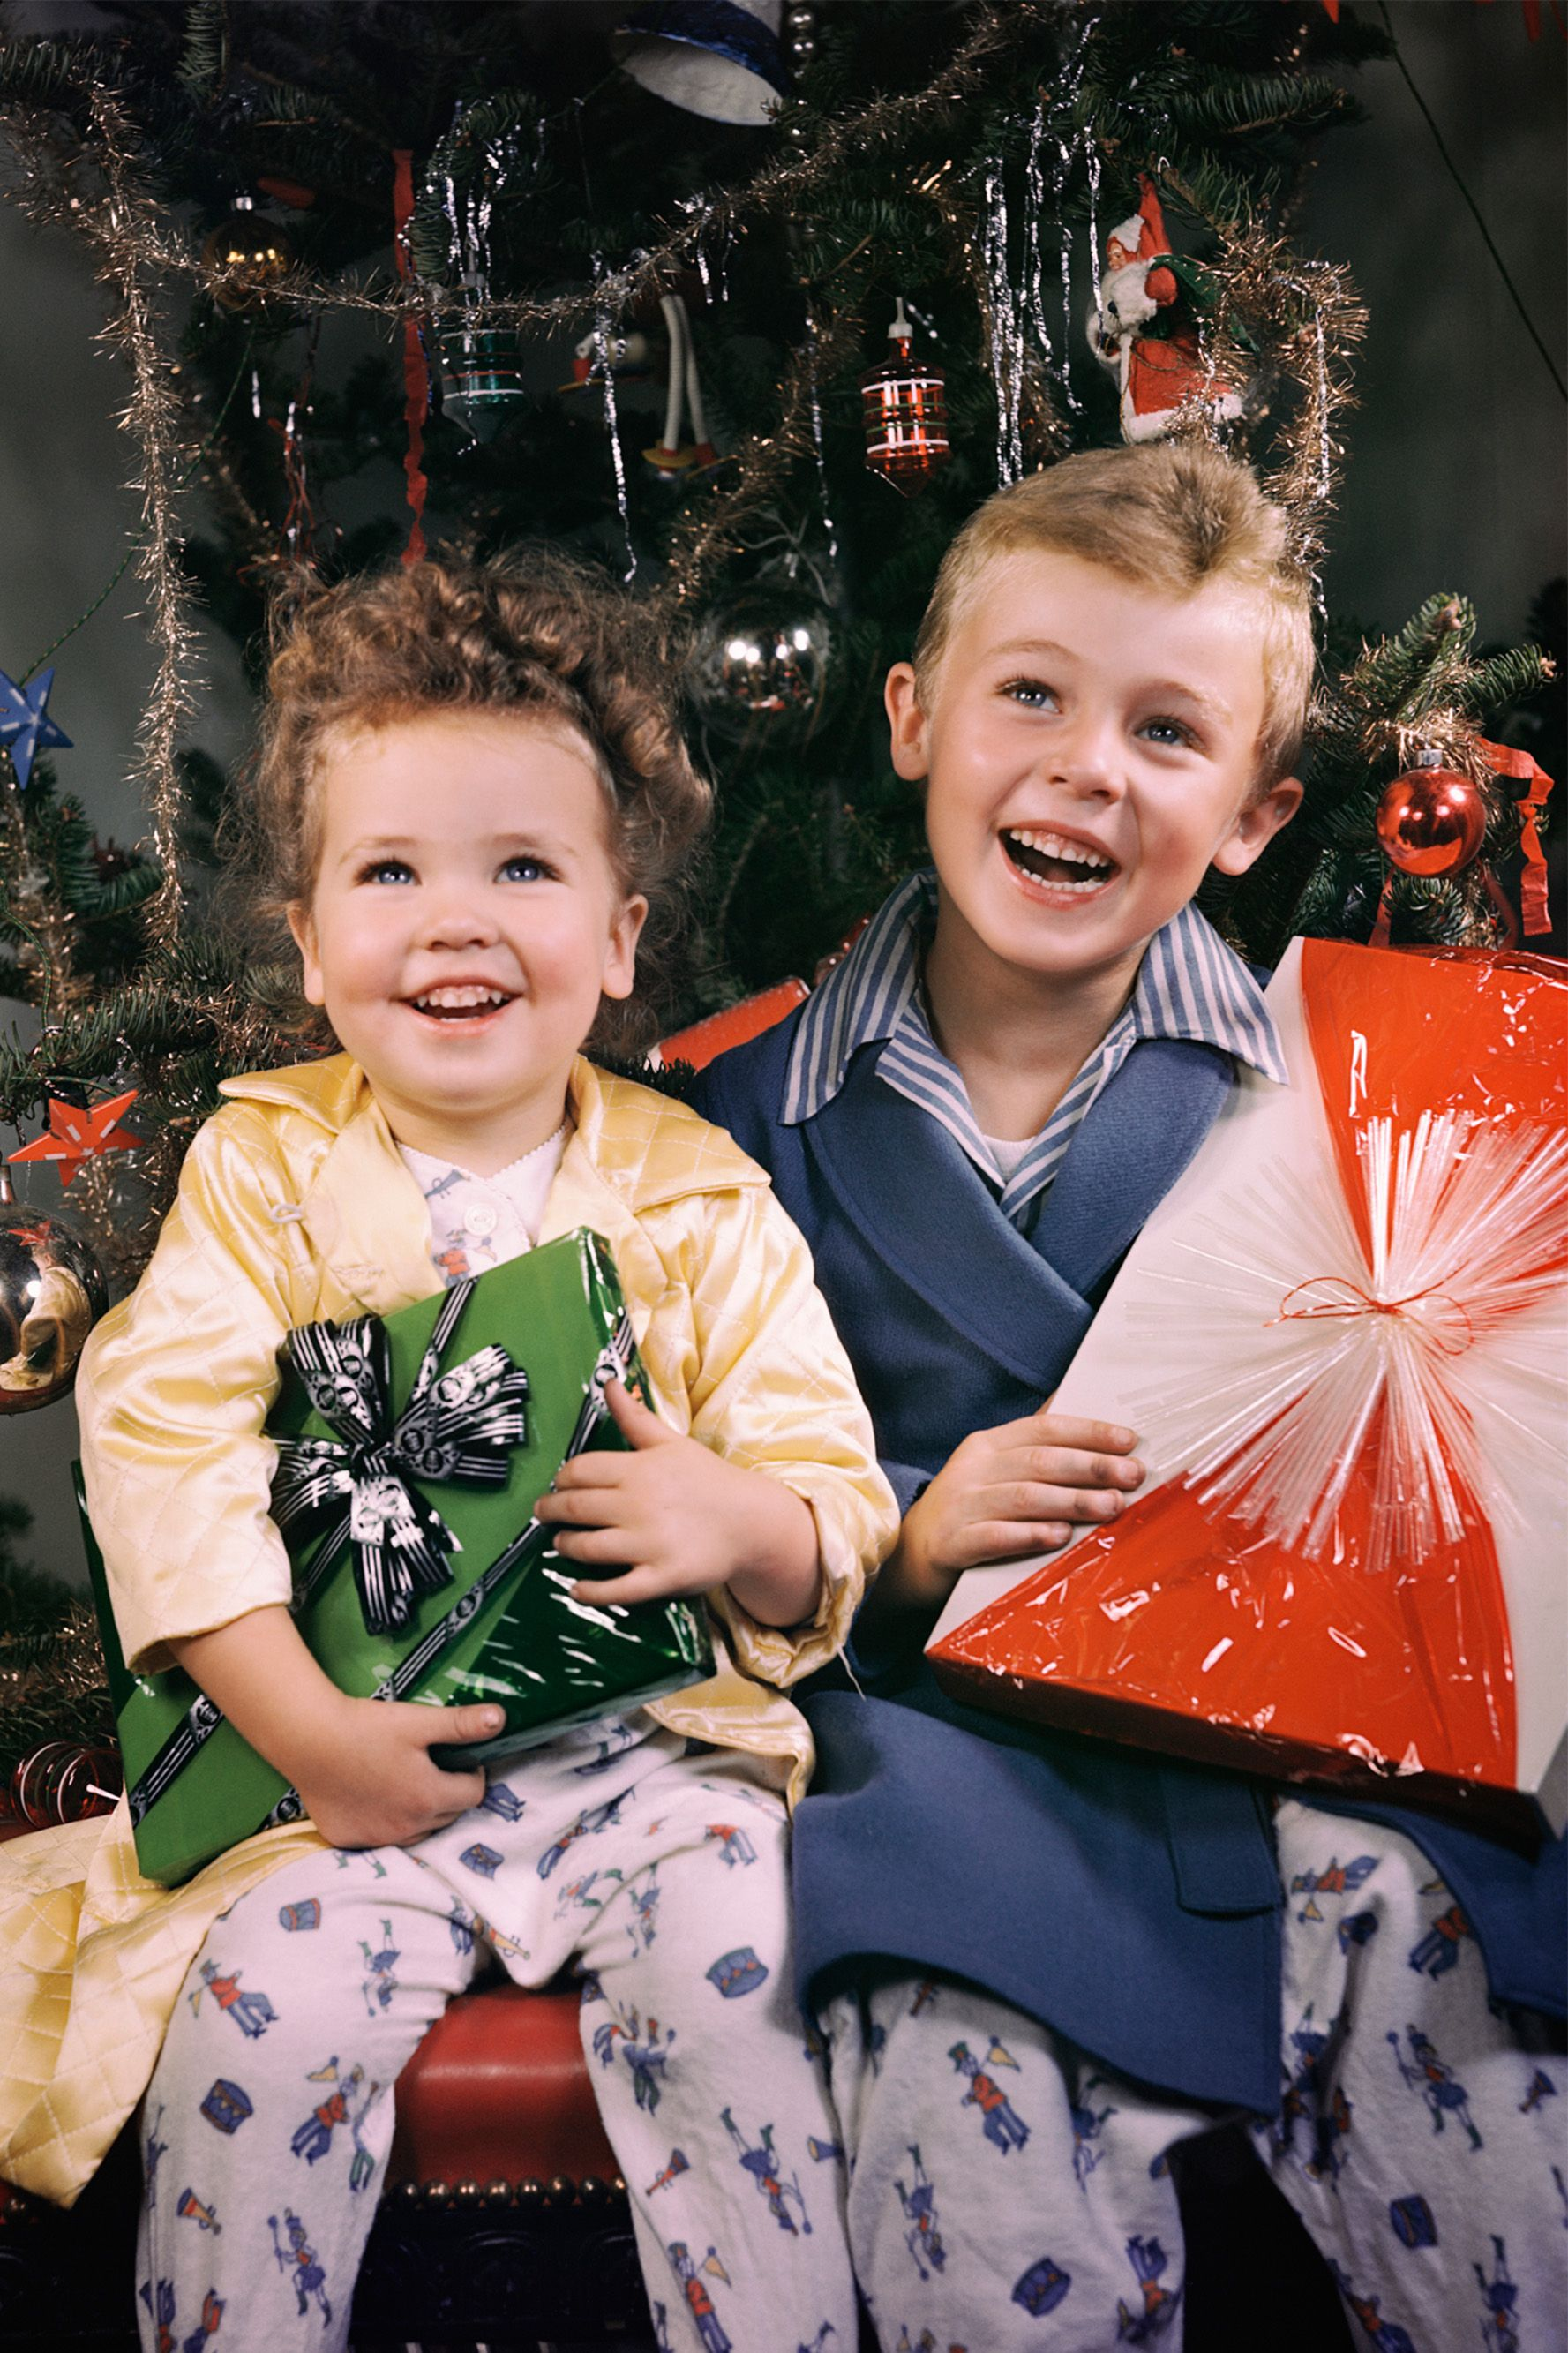 vintage christmas decorations where to buy vintage holiday decor - Vintage Christmas Photos